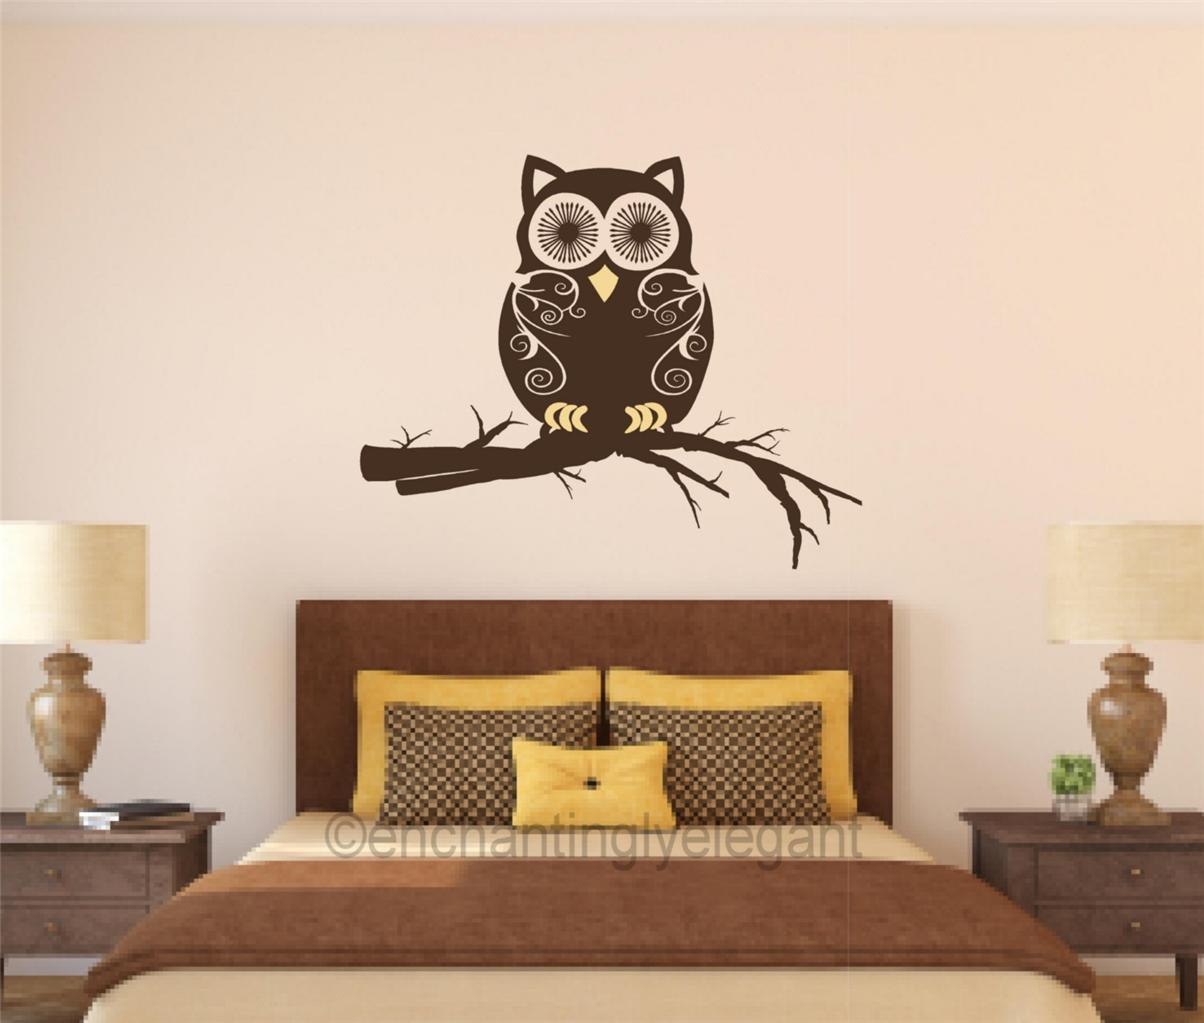 Owl Bathroom Decor Home Interior Design